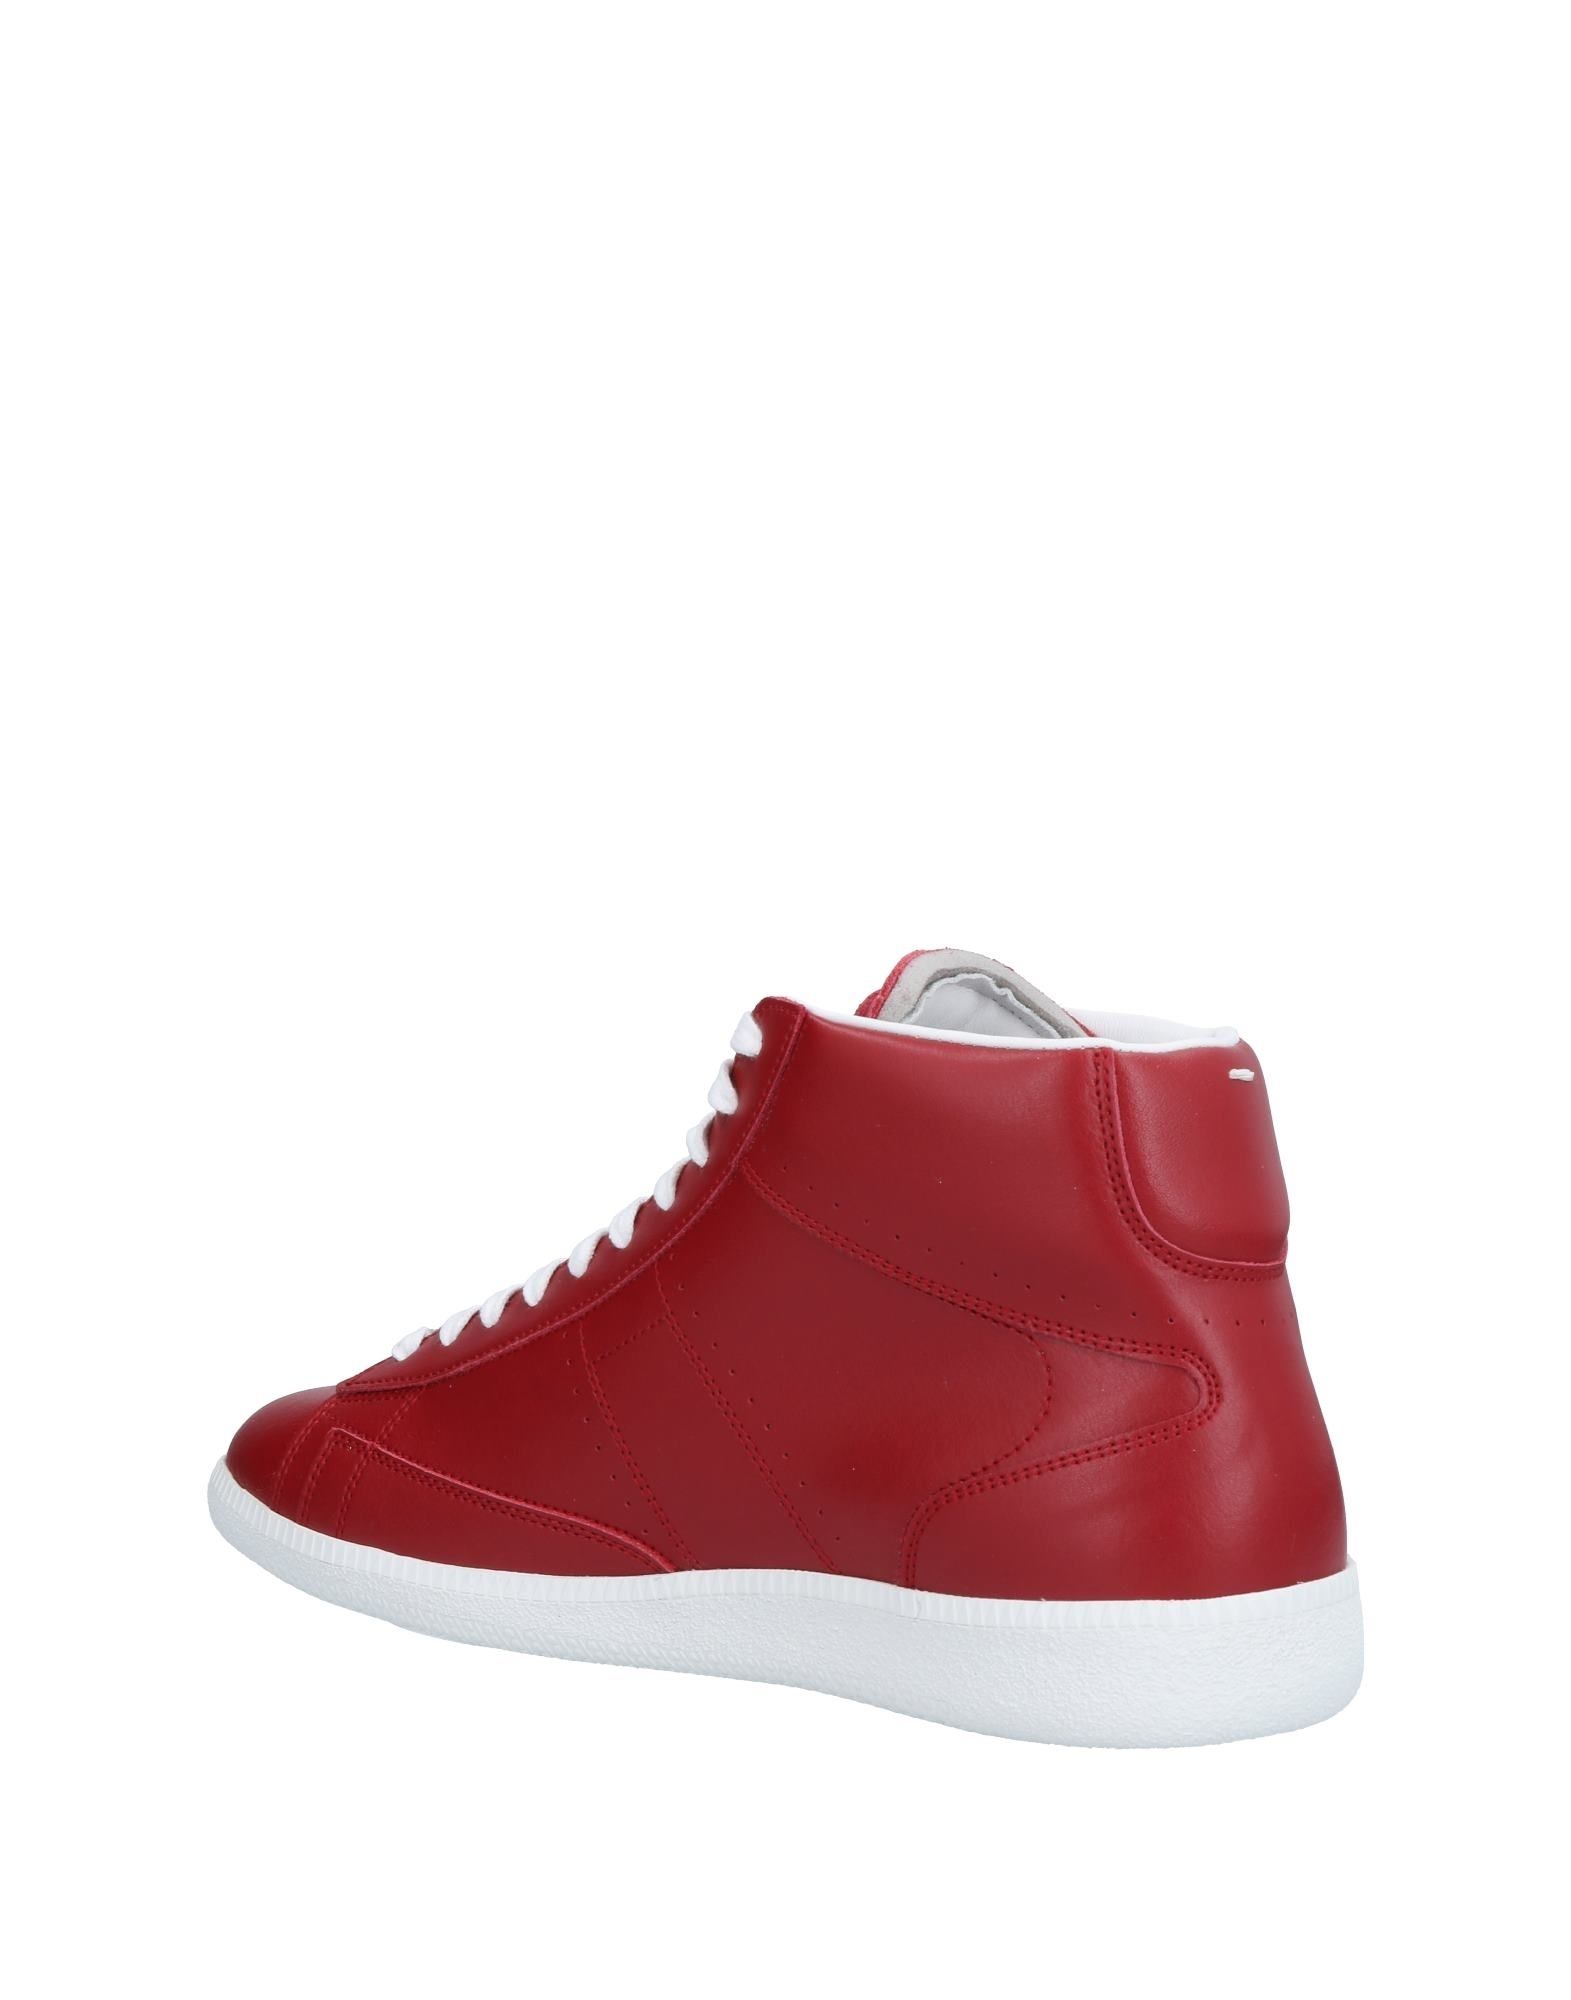 Sneakers 11472134TN Maison Margiela Uomo - 11472134TN Sneakers 09e0ea